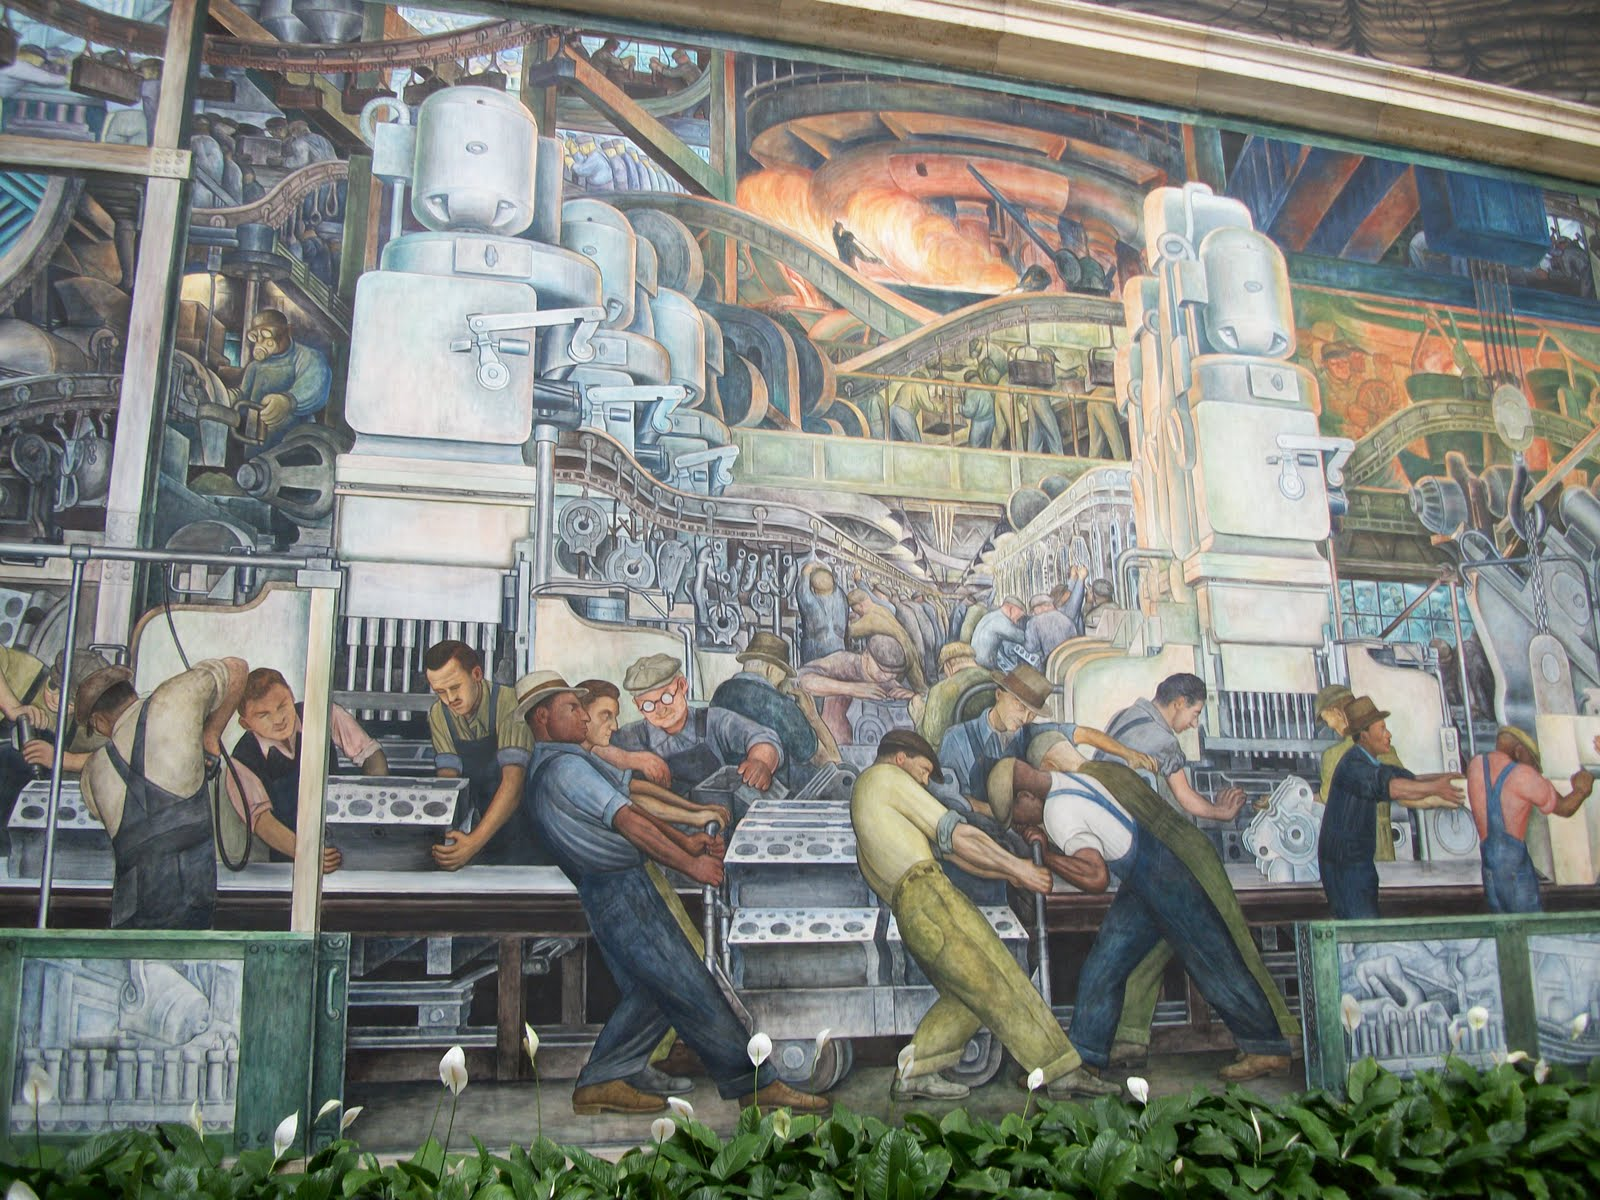 The news from basswood bend dia day for Diego rivera dia mural